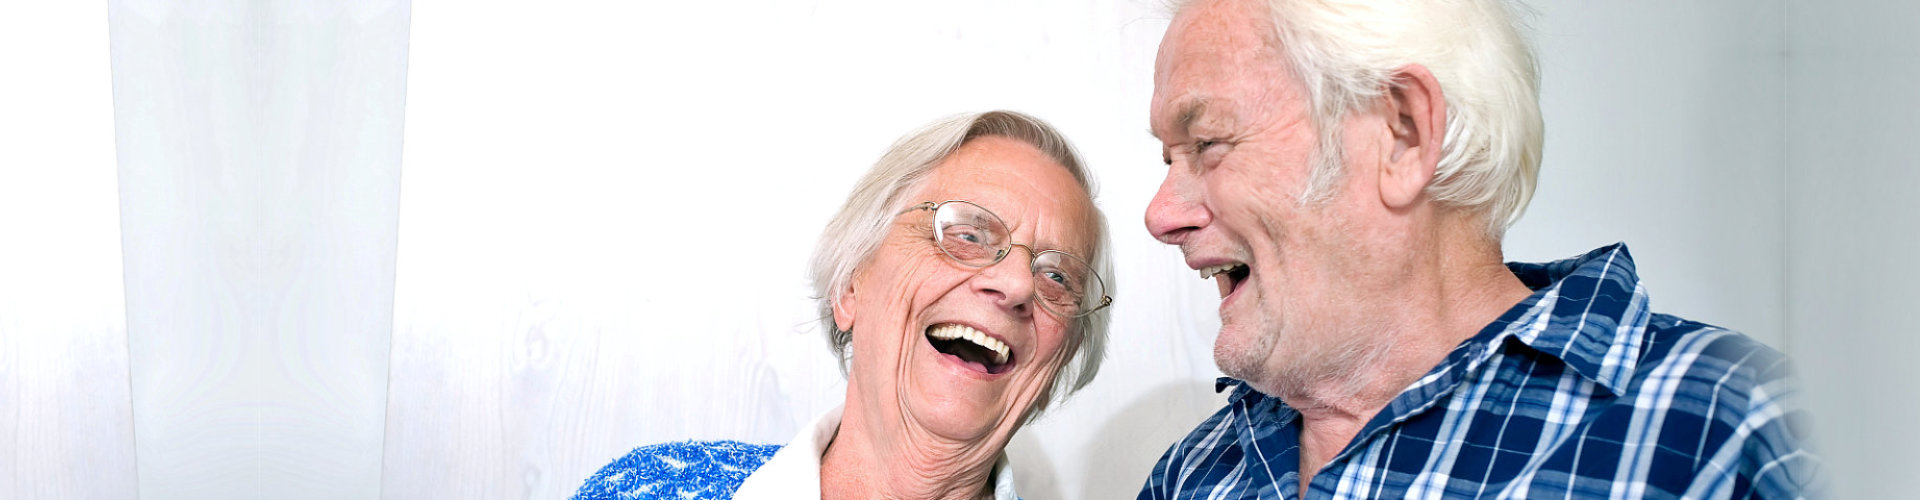 Elderly couple looking at each other laughing.